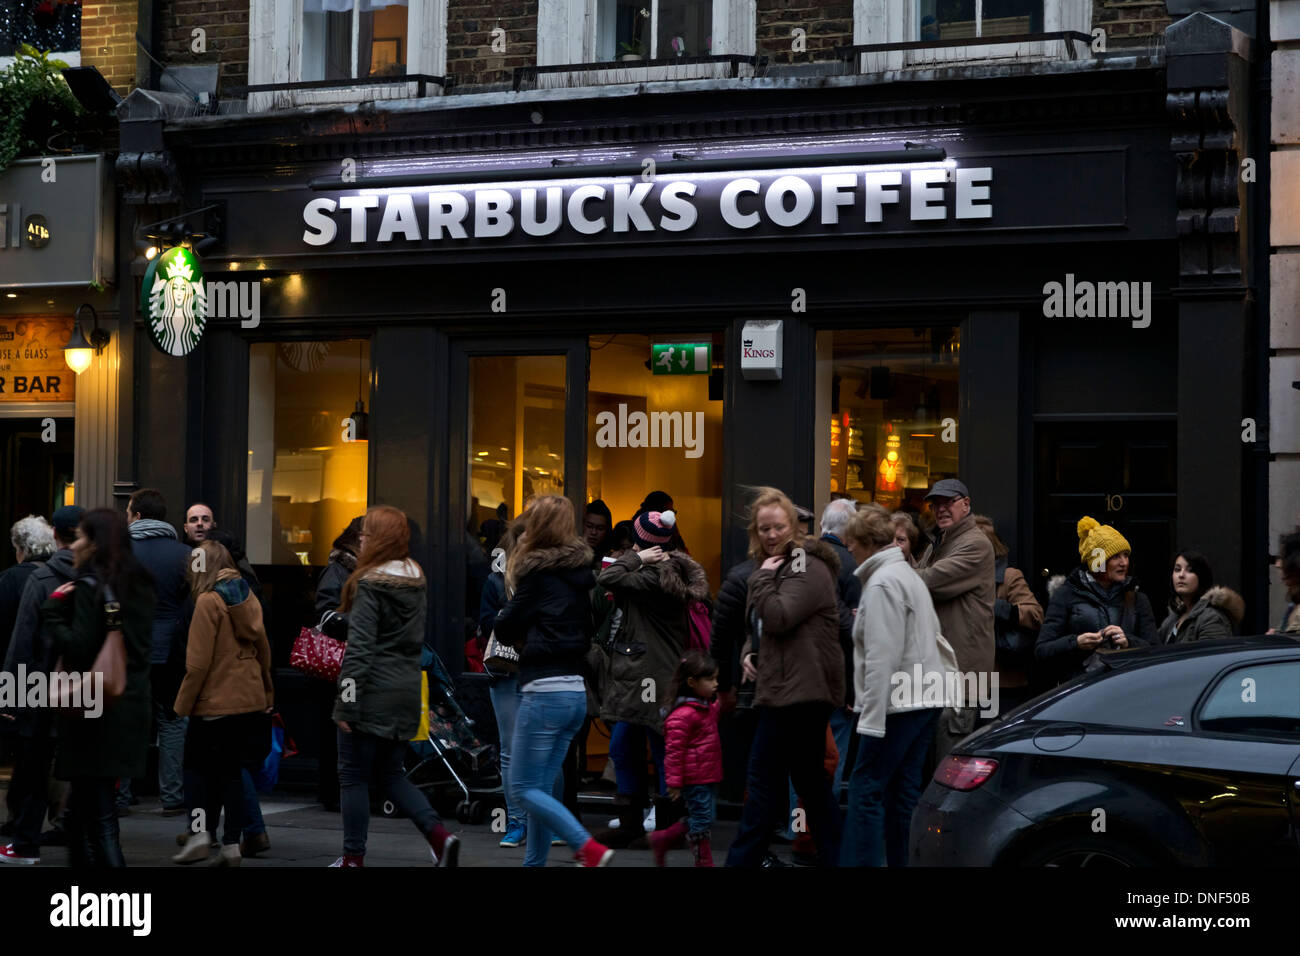 starbucks coffee united kingdom great stock photos u0026 starbucks